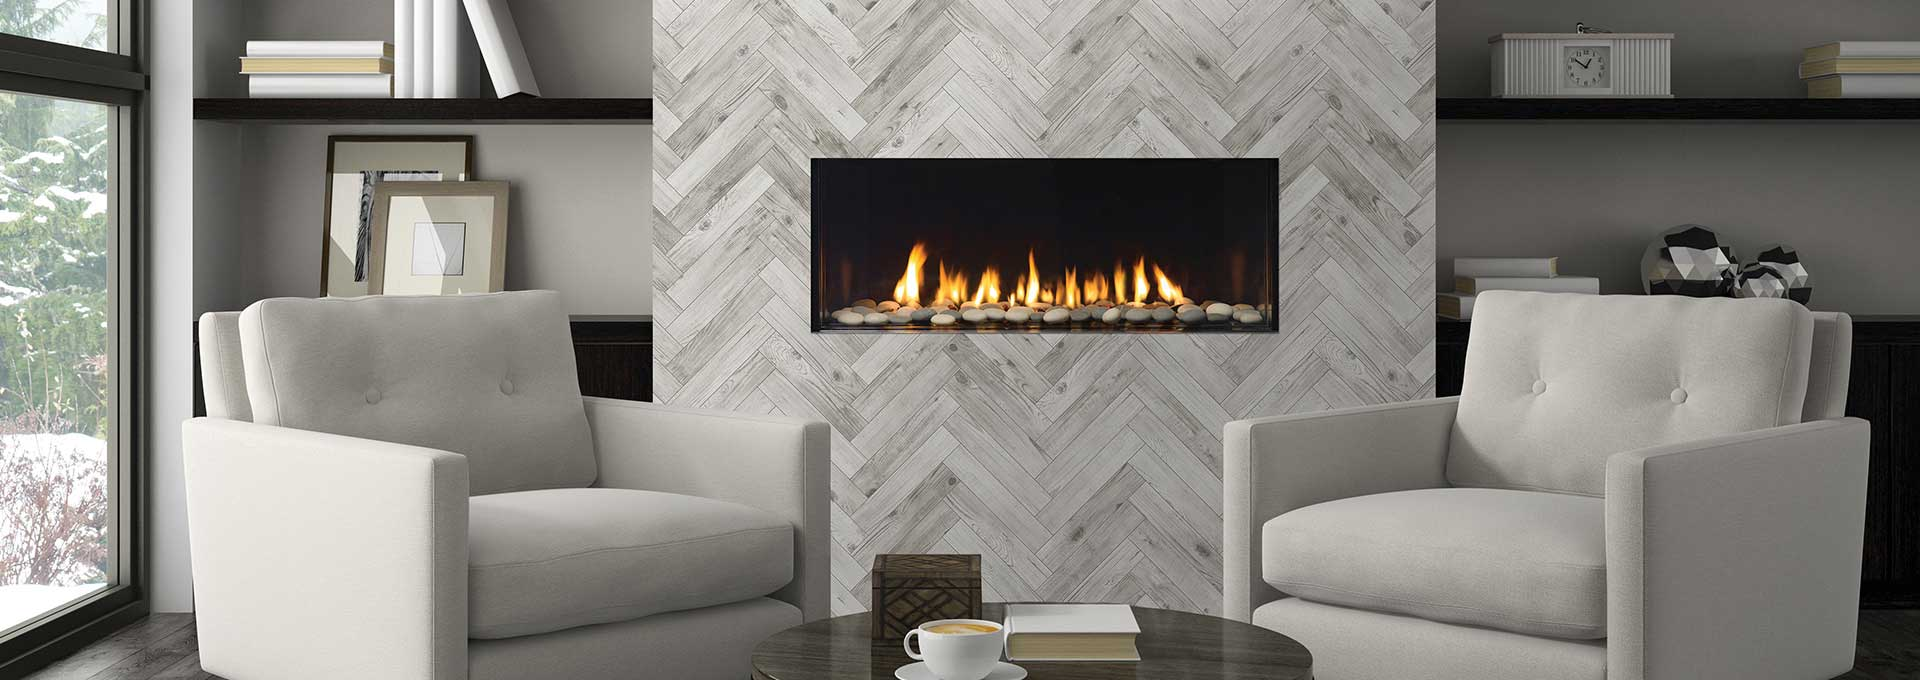 over gas pin natural stones mounted fireplace grey stone tv